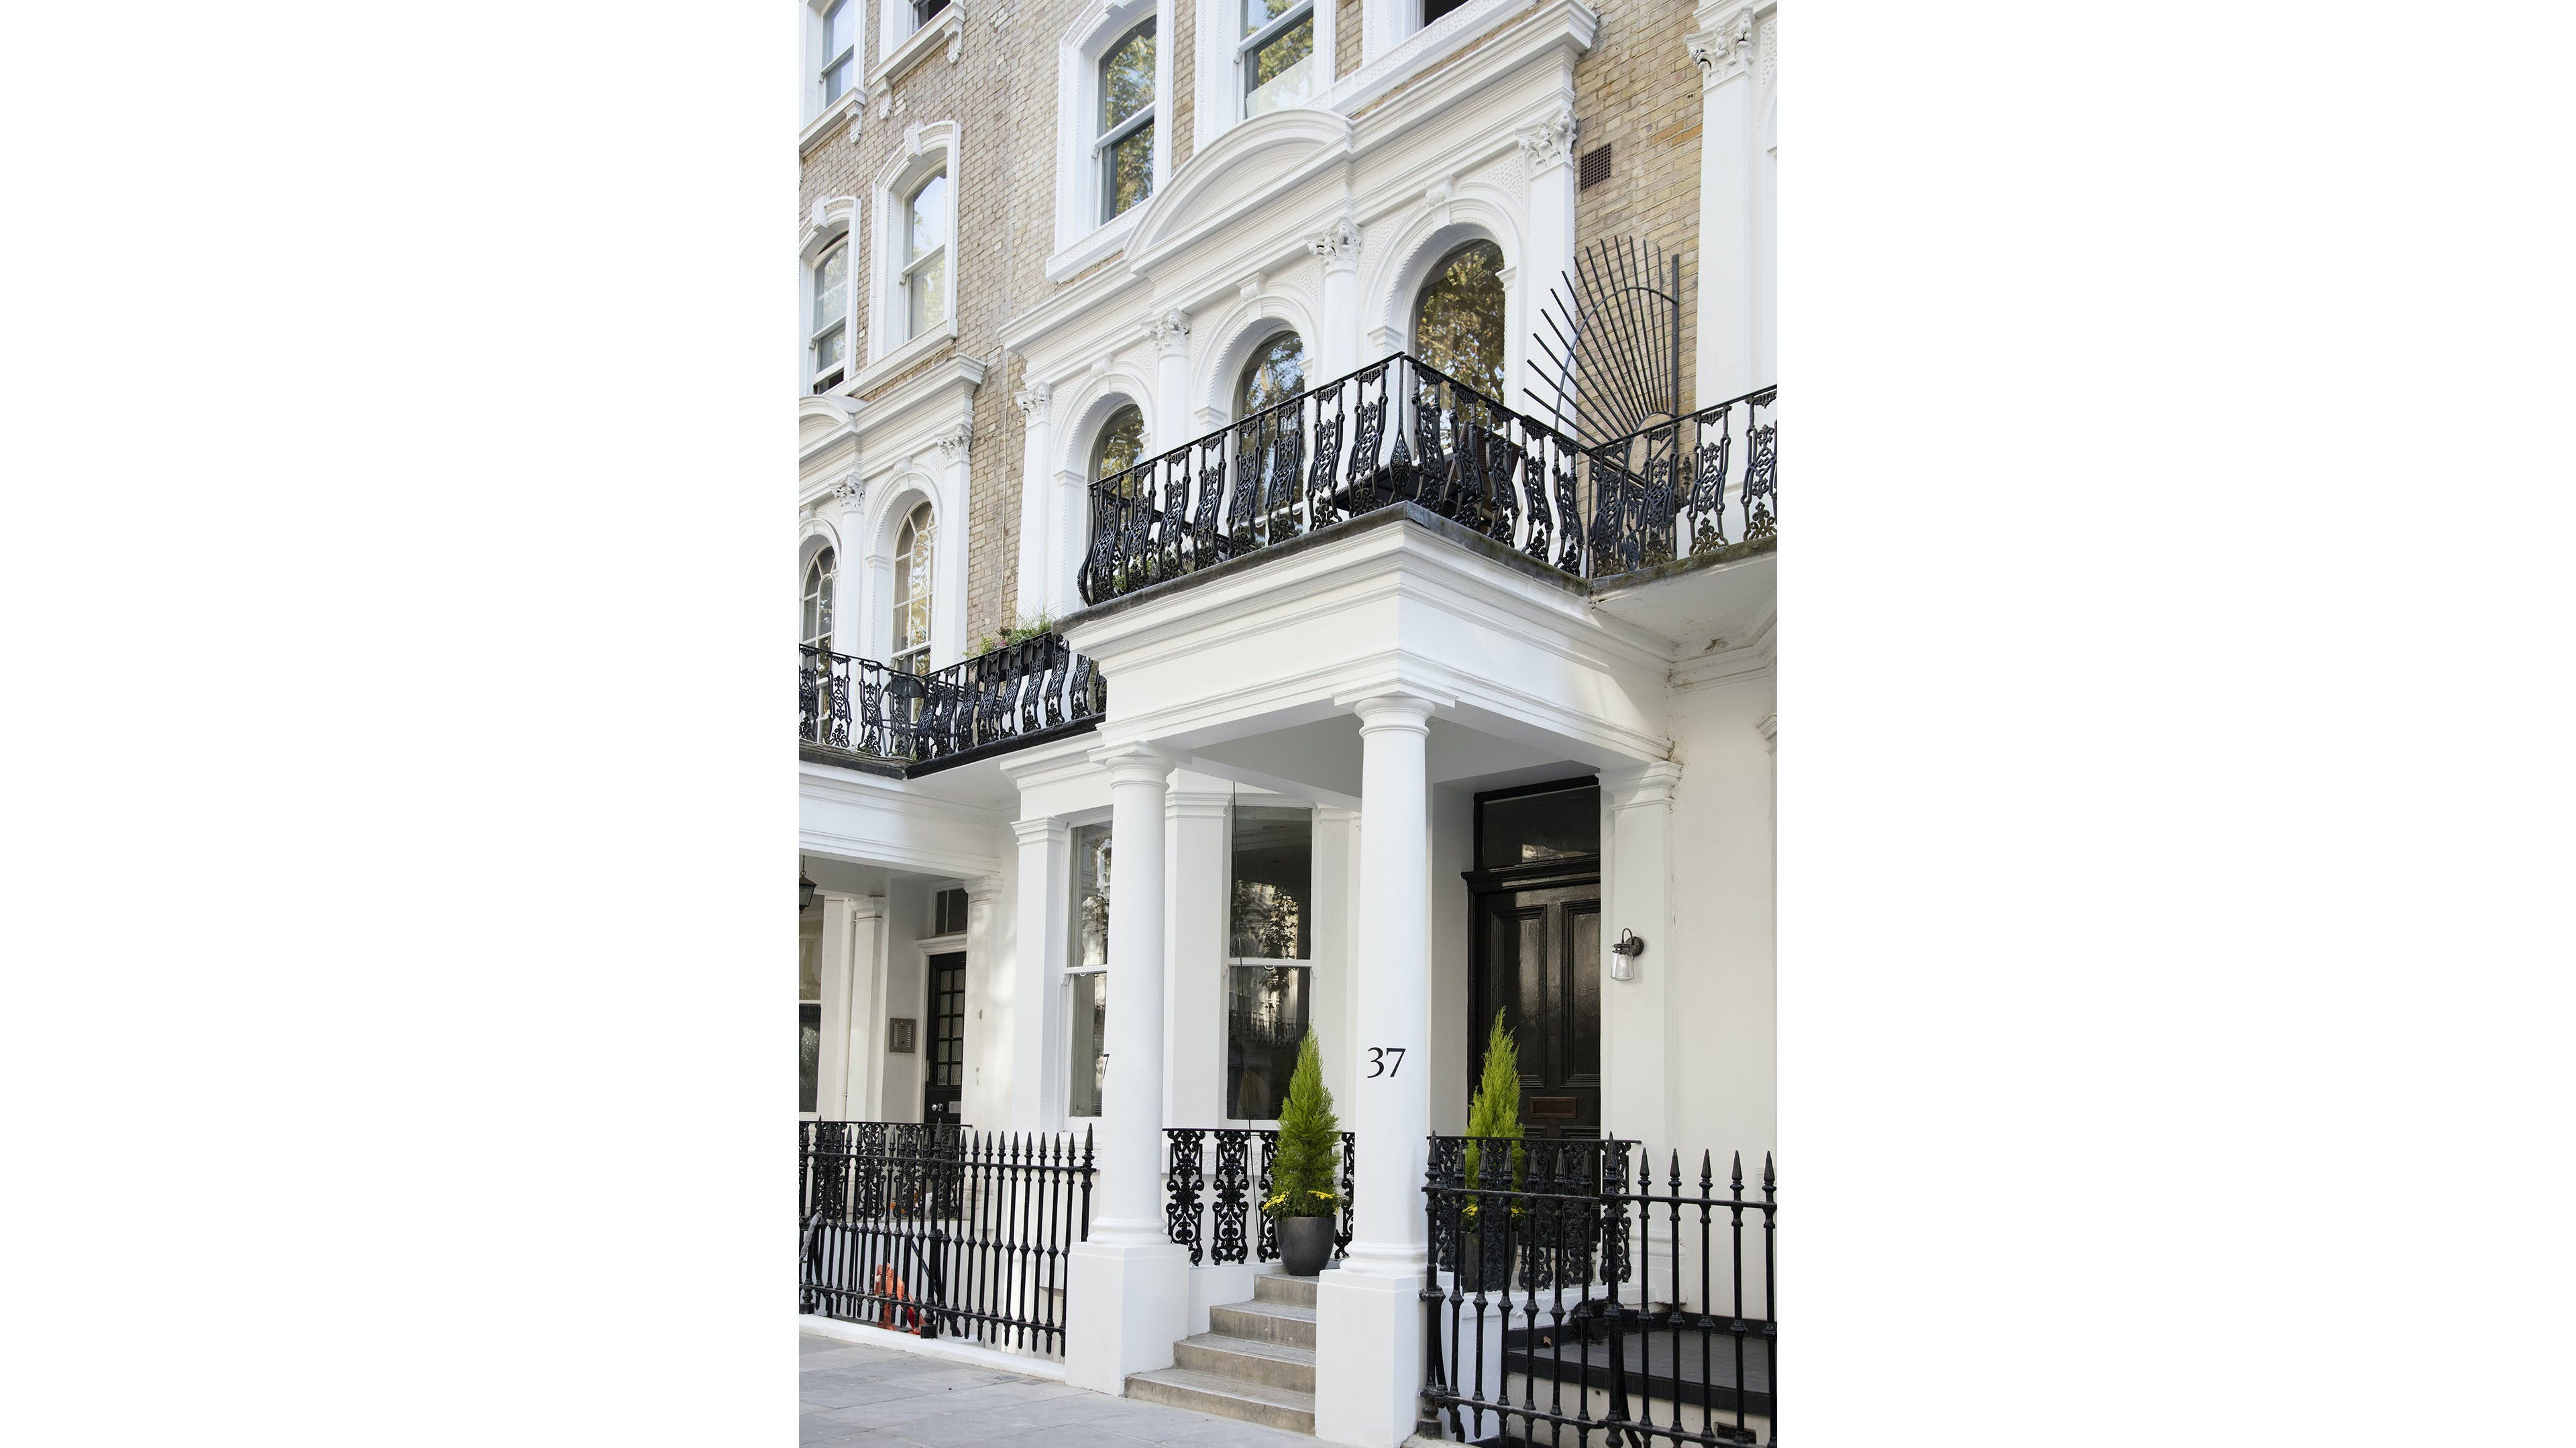 37 Beaufort Gardens, Knightsbridge -  - New York City Townhouse Real Estate